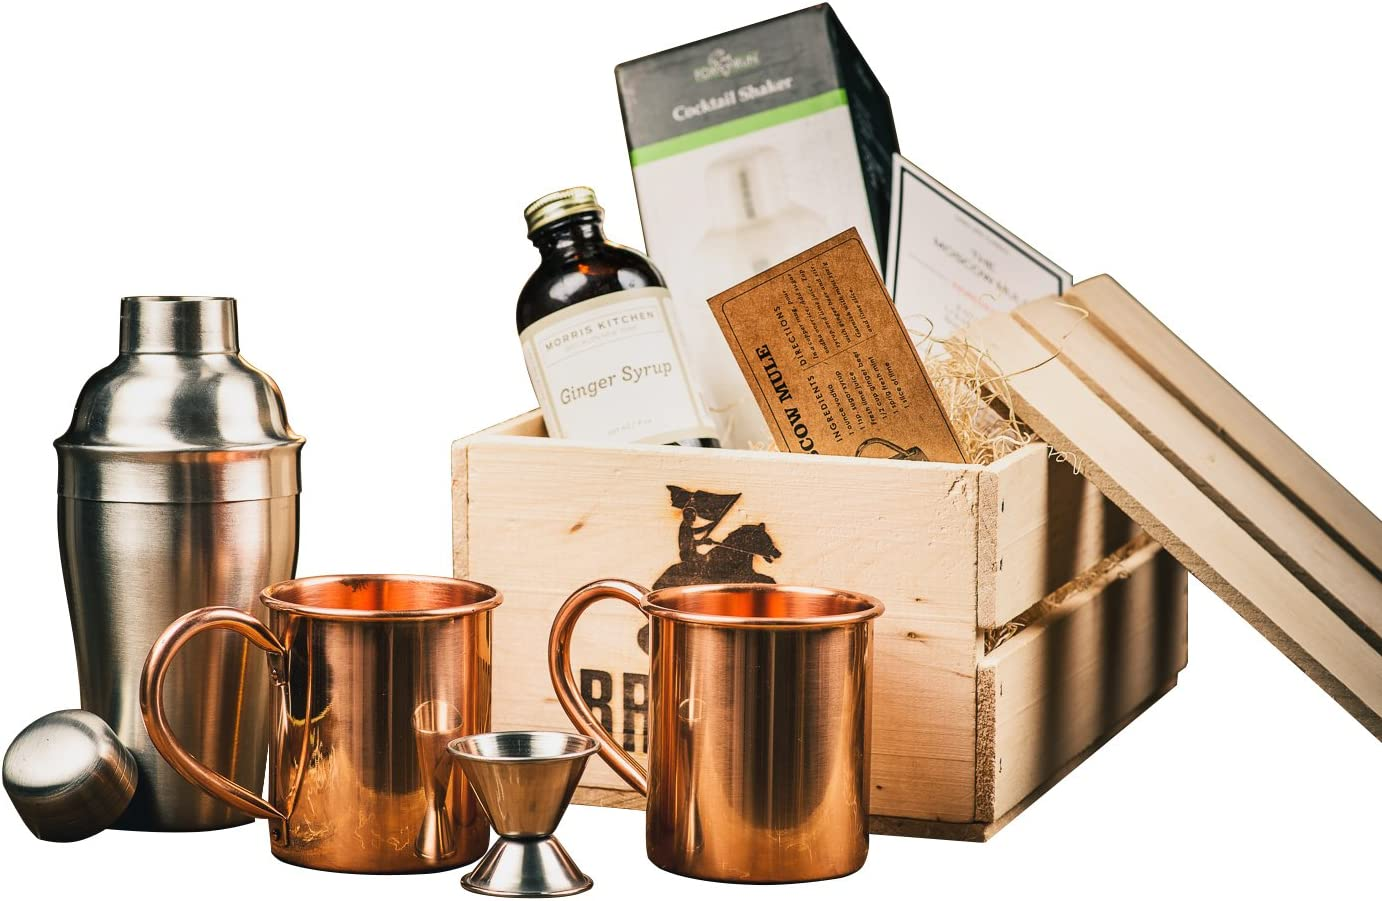 4 Stainless Steel Moscow Mule Cup 2oz Coffee Cocktail Wine Mug Barware Gift